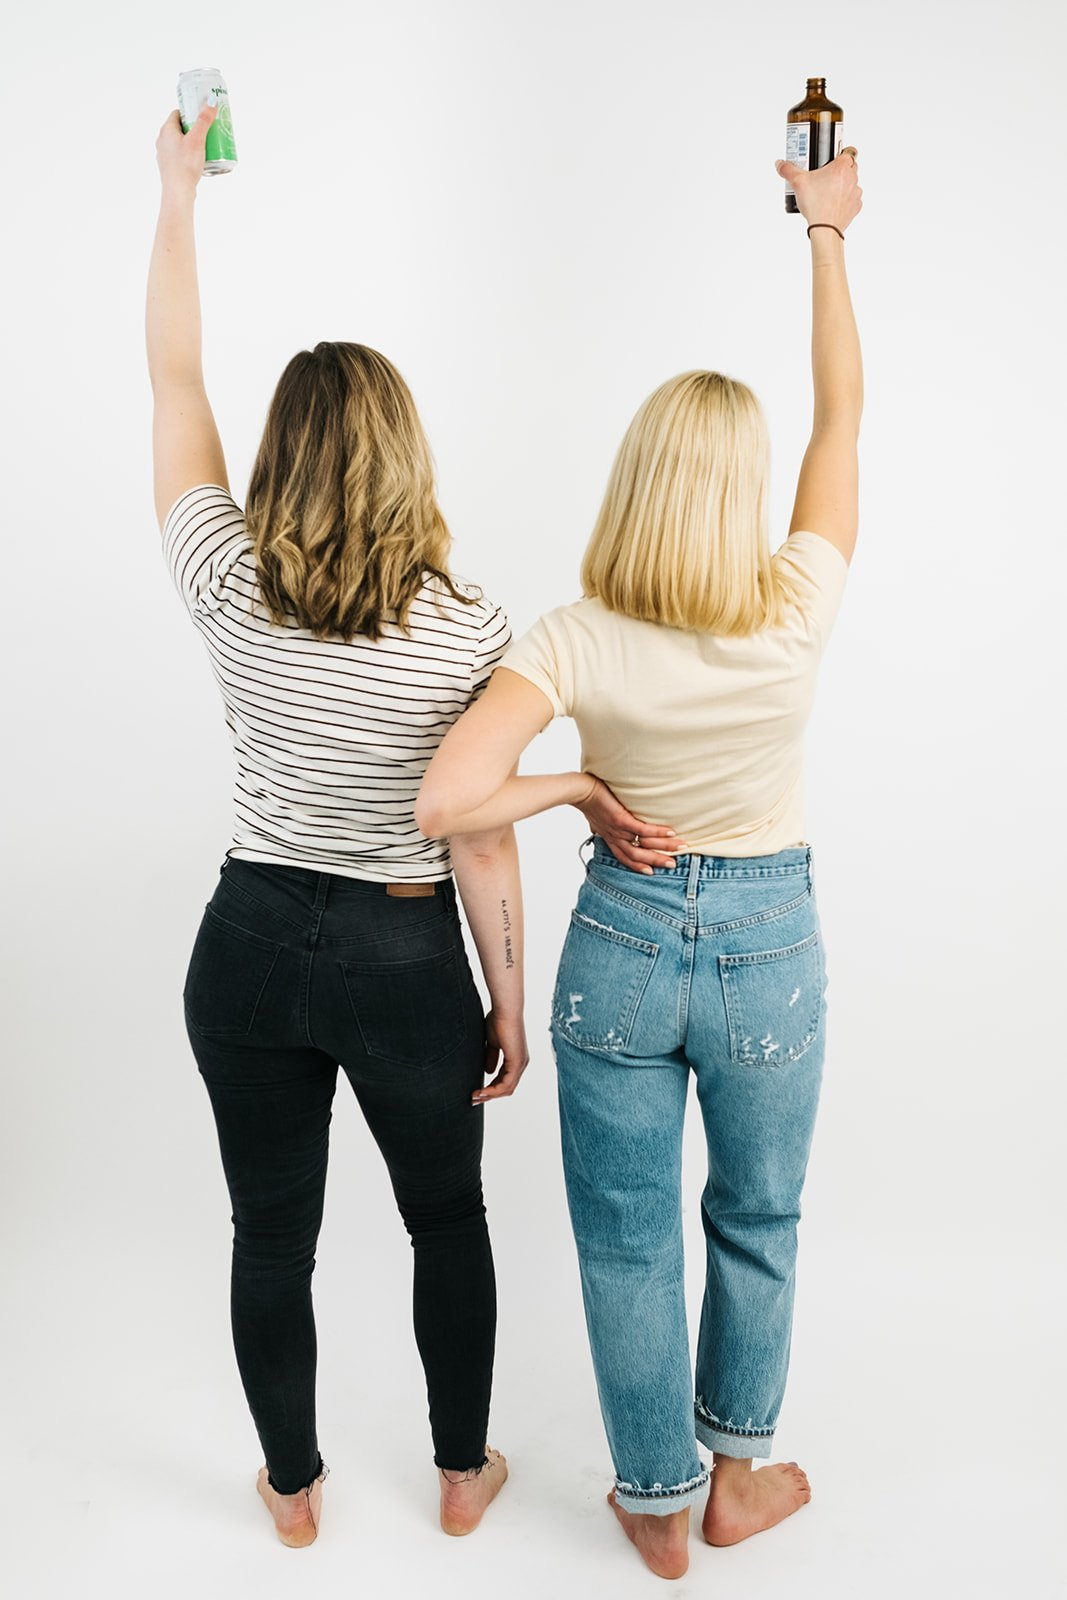 the back of two women in jeans and t-shirts holding drinks in the air